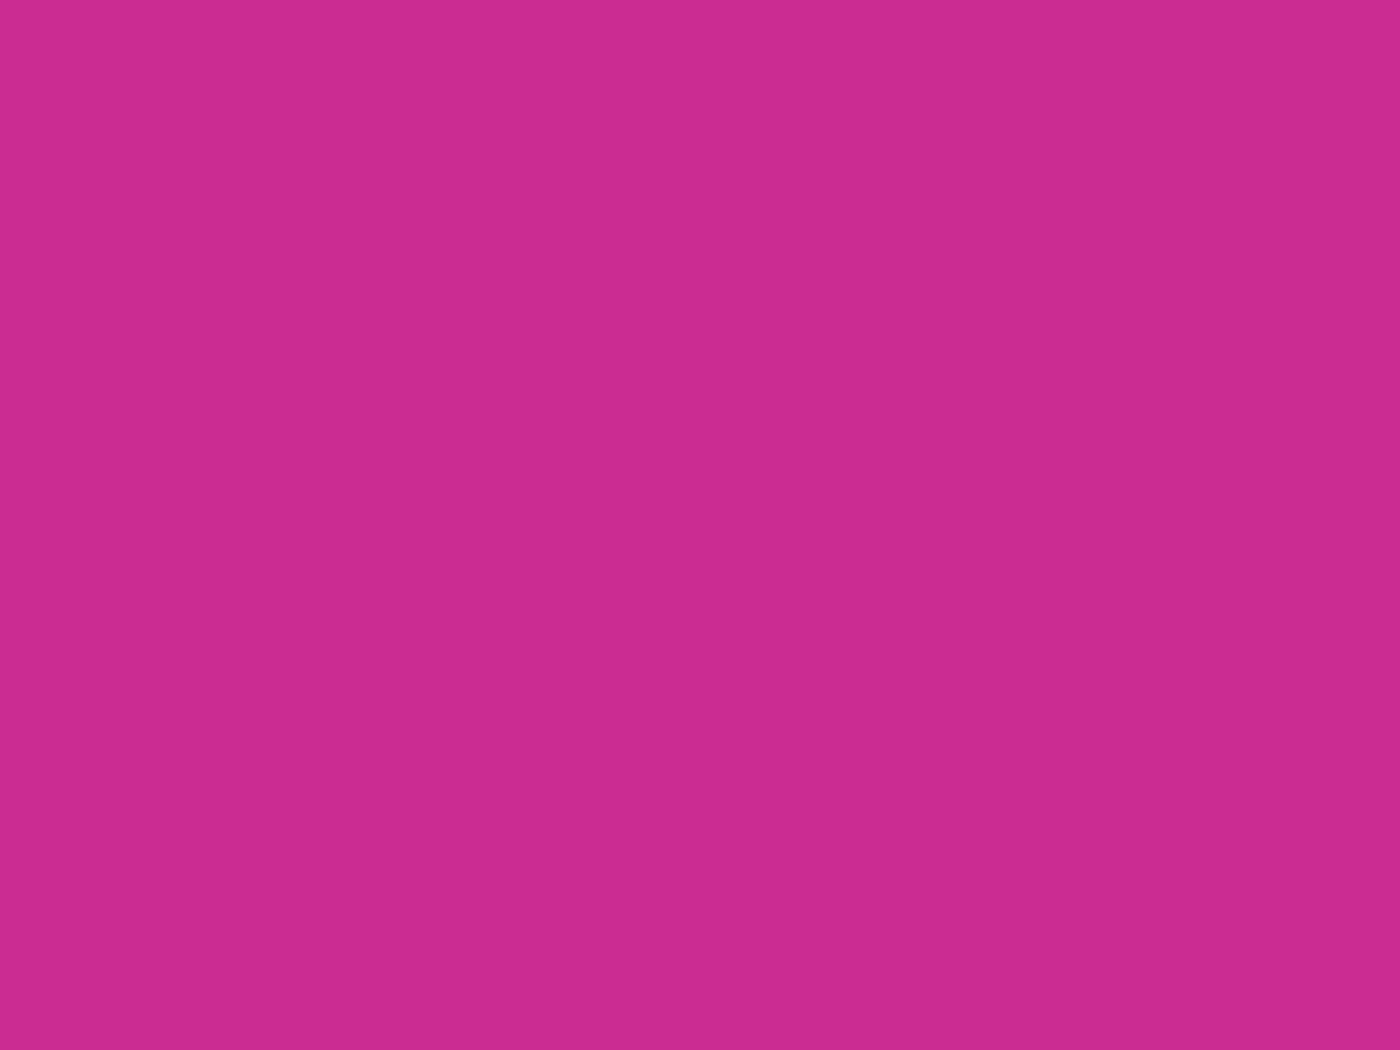 1400x1050 Royal Fuchsia Solid Color Background